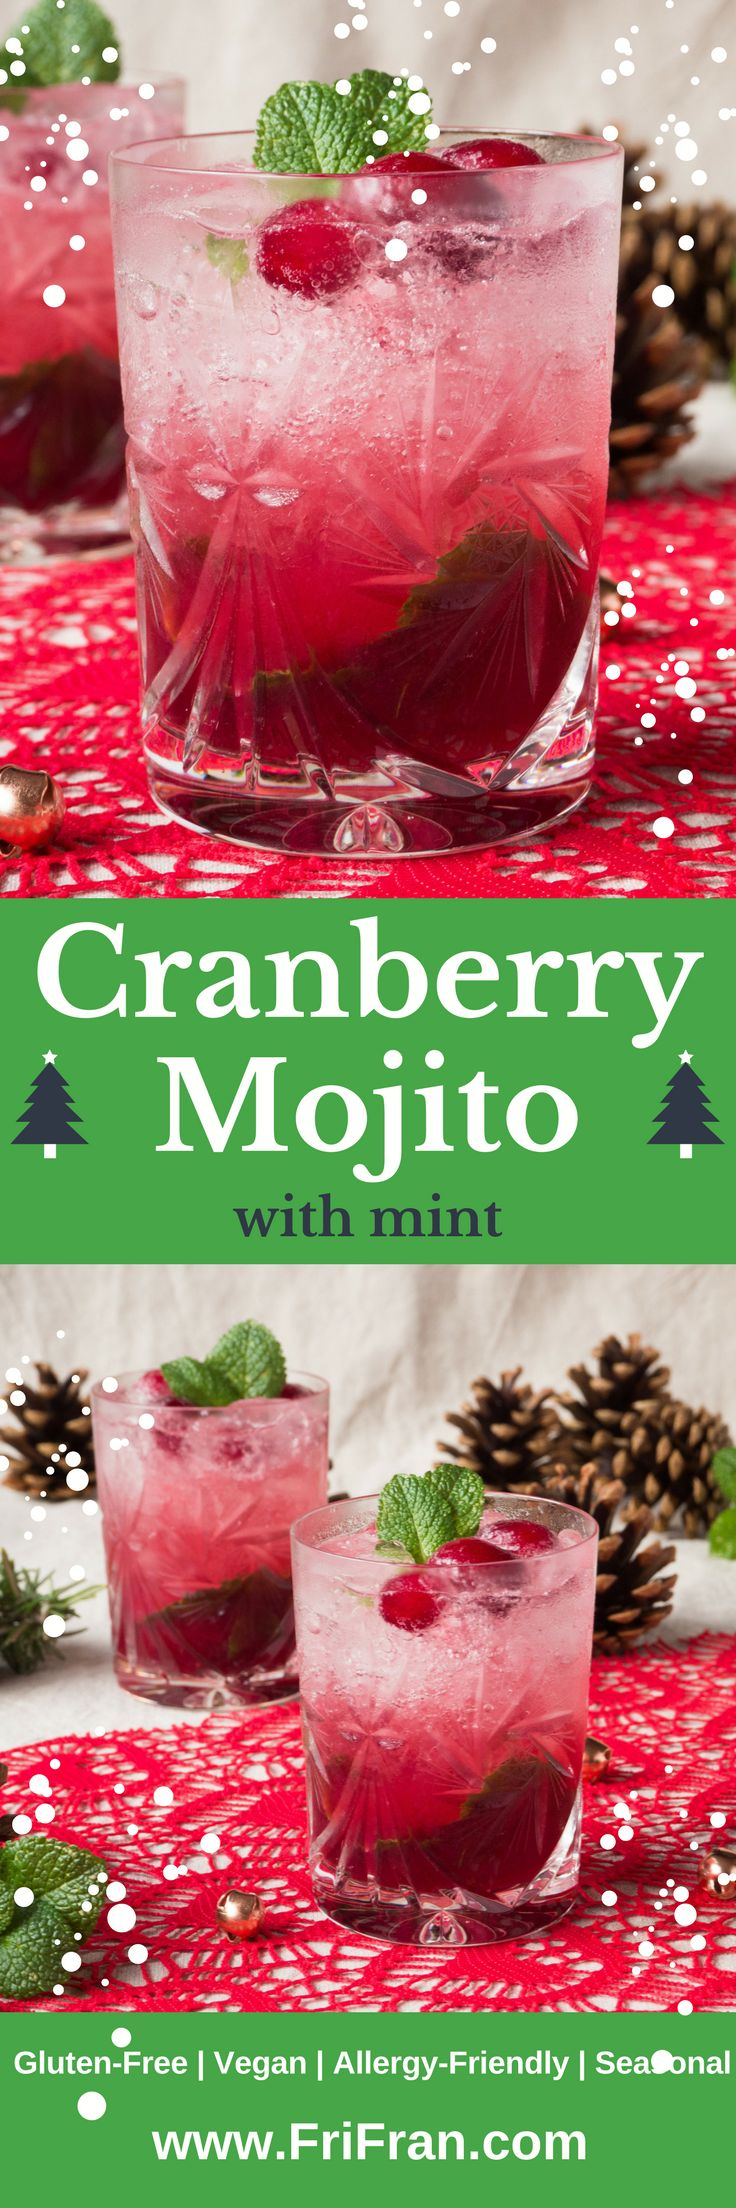 Cranberry Mojito is a fantastic gluten free, vegan cocktail to celebrate the festive season with. Make individual ones or a jug - more to share!  #GlutenFree #Vegan #AllergyFriendly #Seasonal #AlliumFree #CoconutFree... + celery free, coconut free, garlic free, lupin free, mustard free, nightshade free, onion free, peanut free, sesame free, soya free, tree nut free +